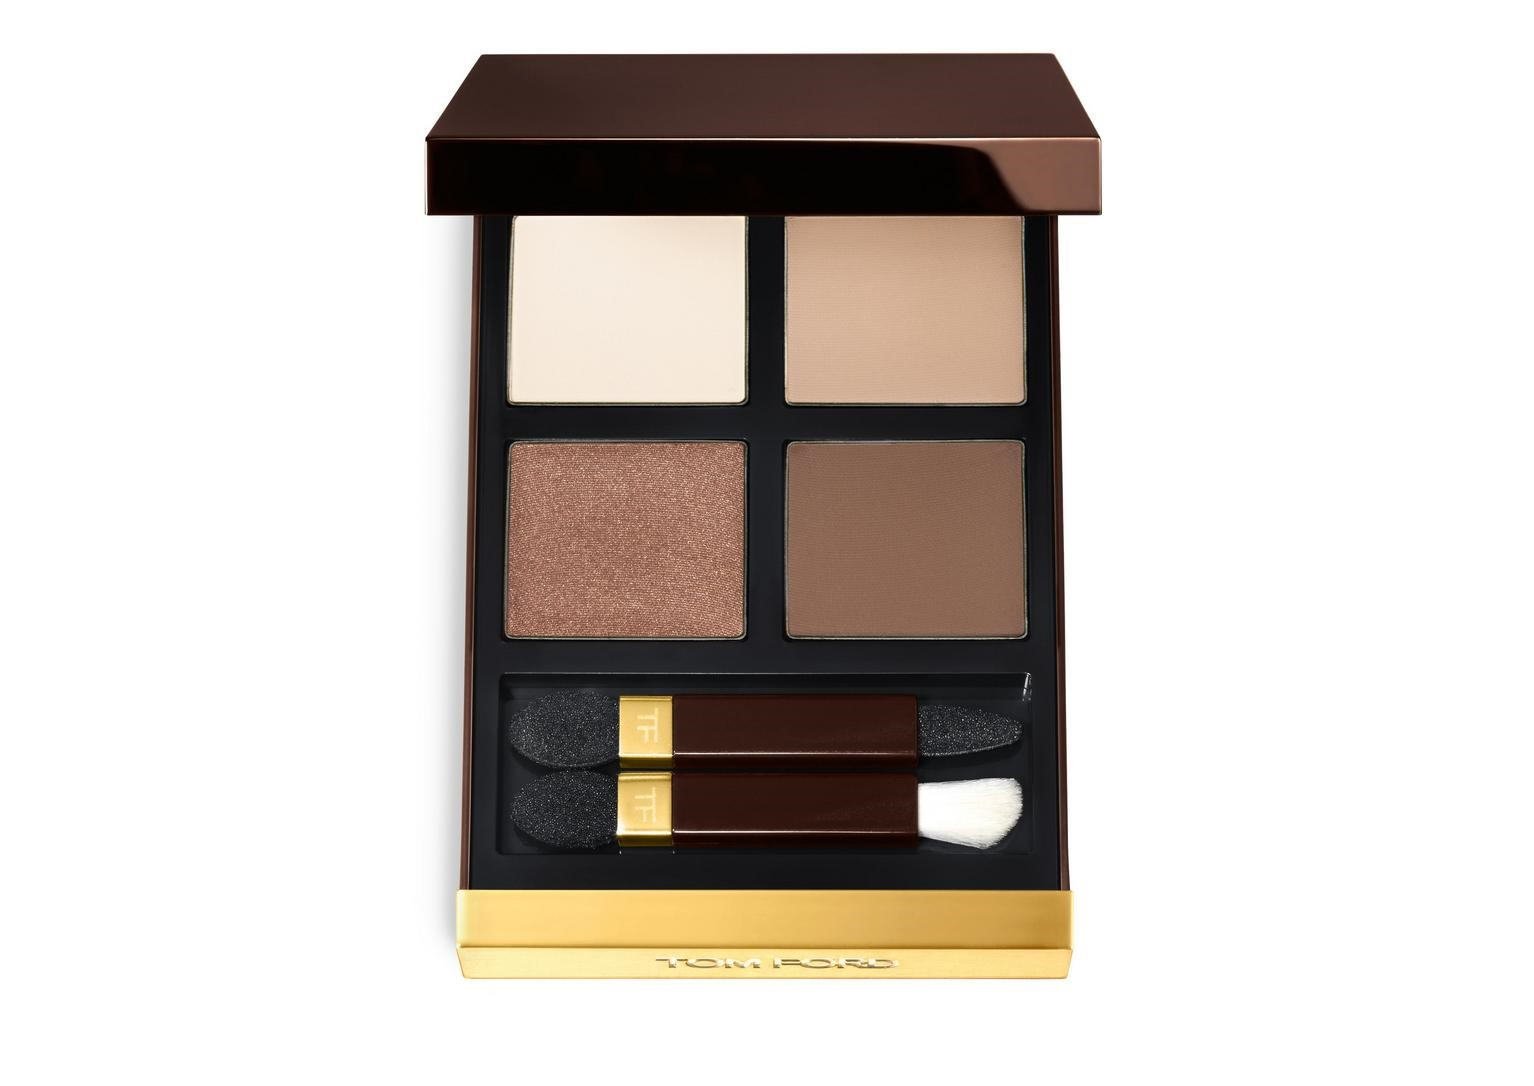 Tom Ford 's  Eye Quad  ($80) [Pictured in Cocoa Mirage]